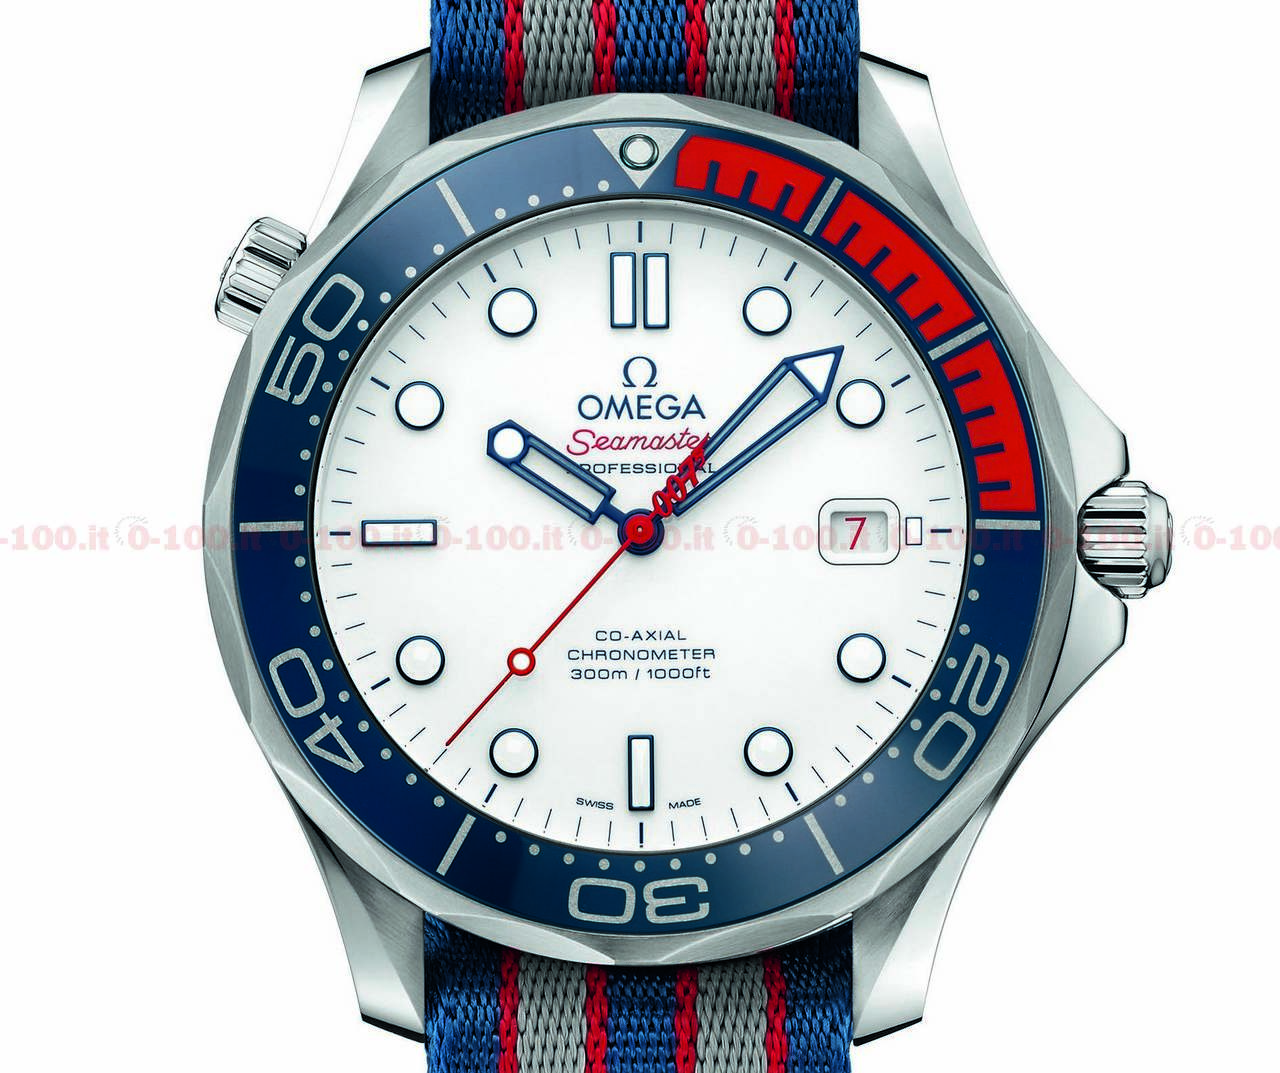 """Omega Seamaster Diver 300M """"Commander's Watch"""" Limited Edition_0-1004"""